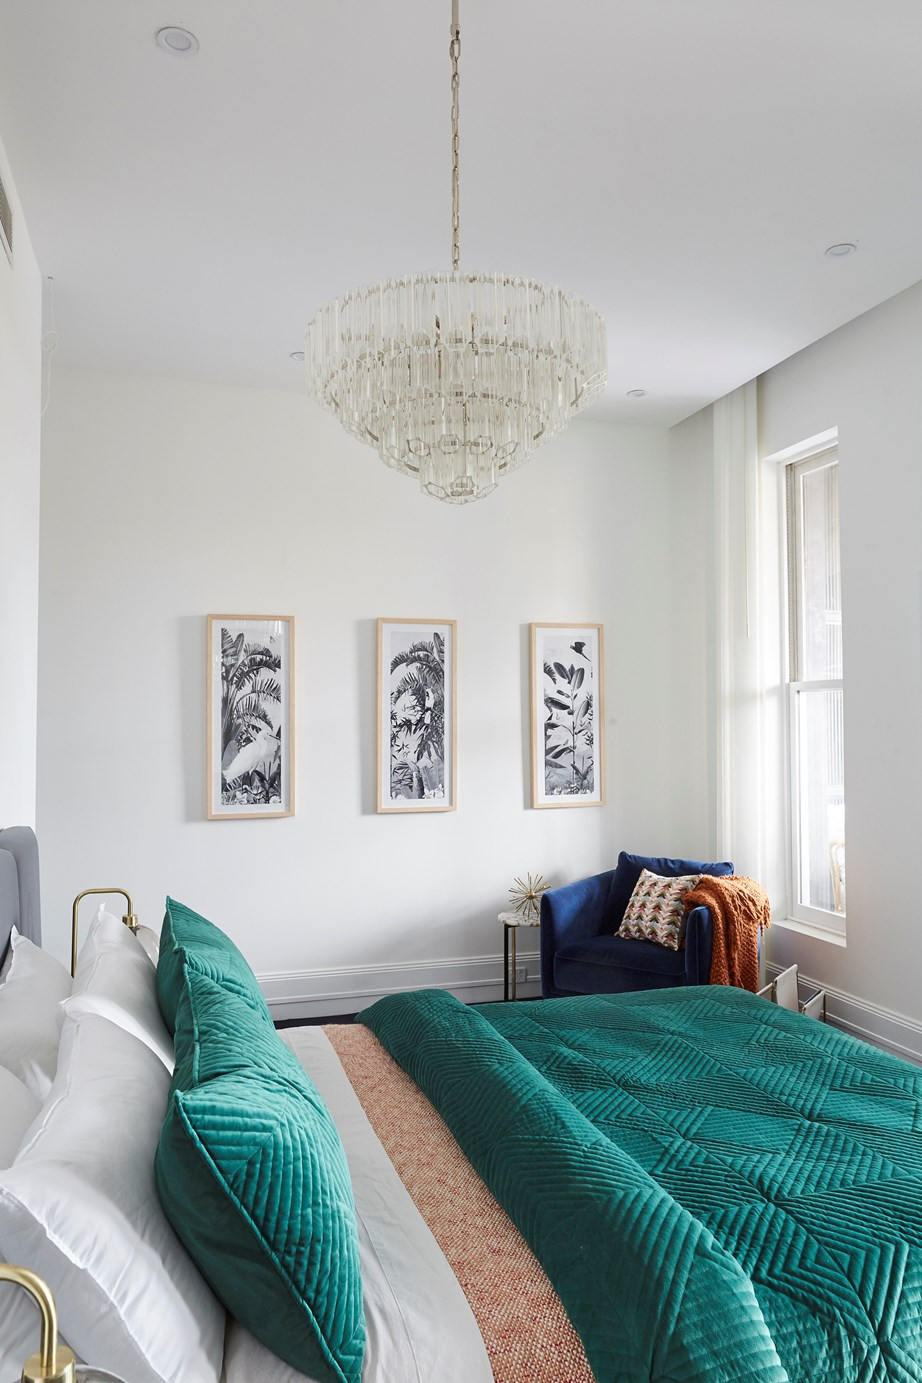 """**Week 1, Guest Bedroom** Mitch and Mark aimed high in [week one's guest bedroom reveal](https://www.homestolove.com.au/the-block-2019-guest-bedroom-reveal-20531